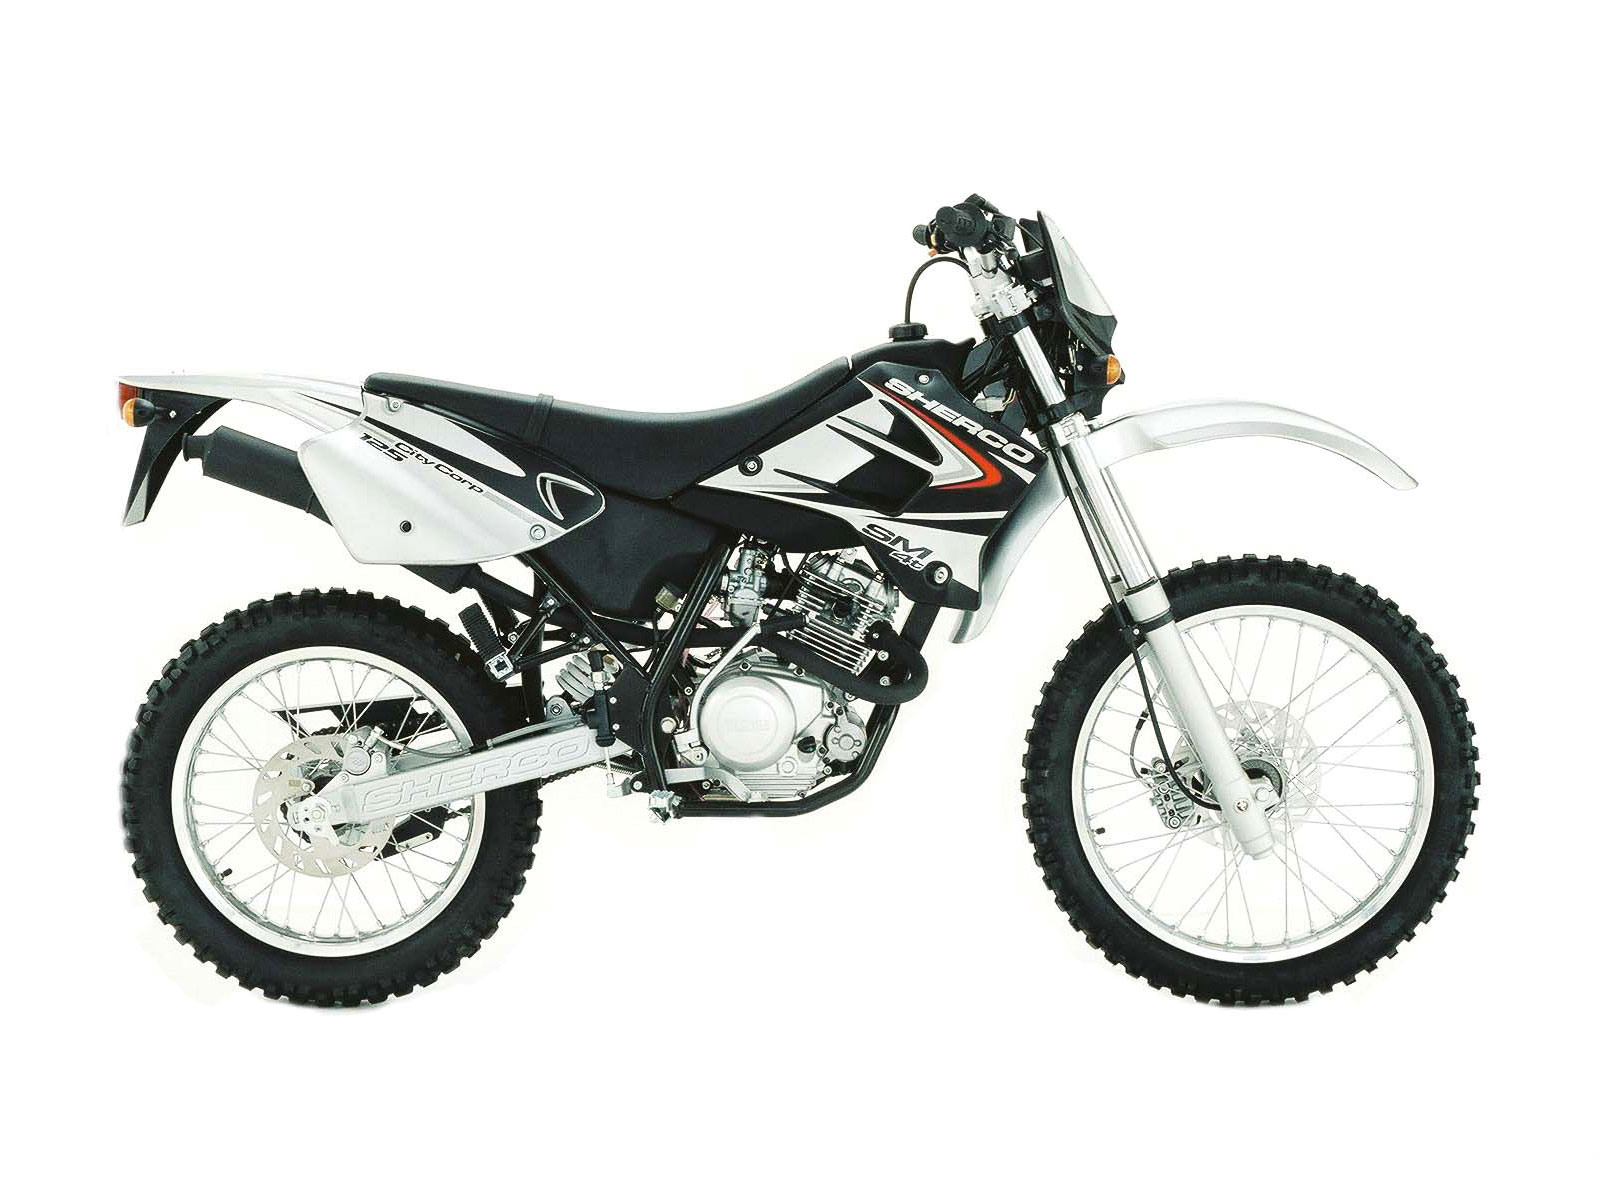 Sherco 125cc Enduro Shark Replica 2007 images #124656